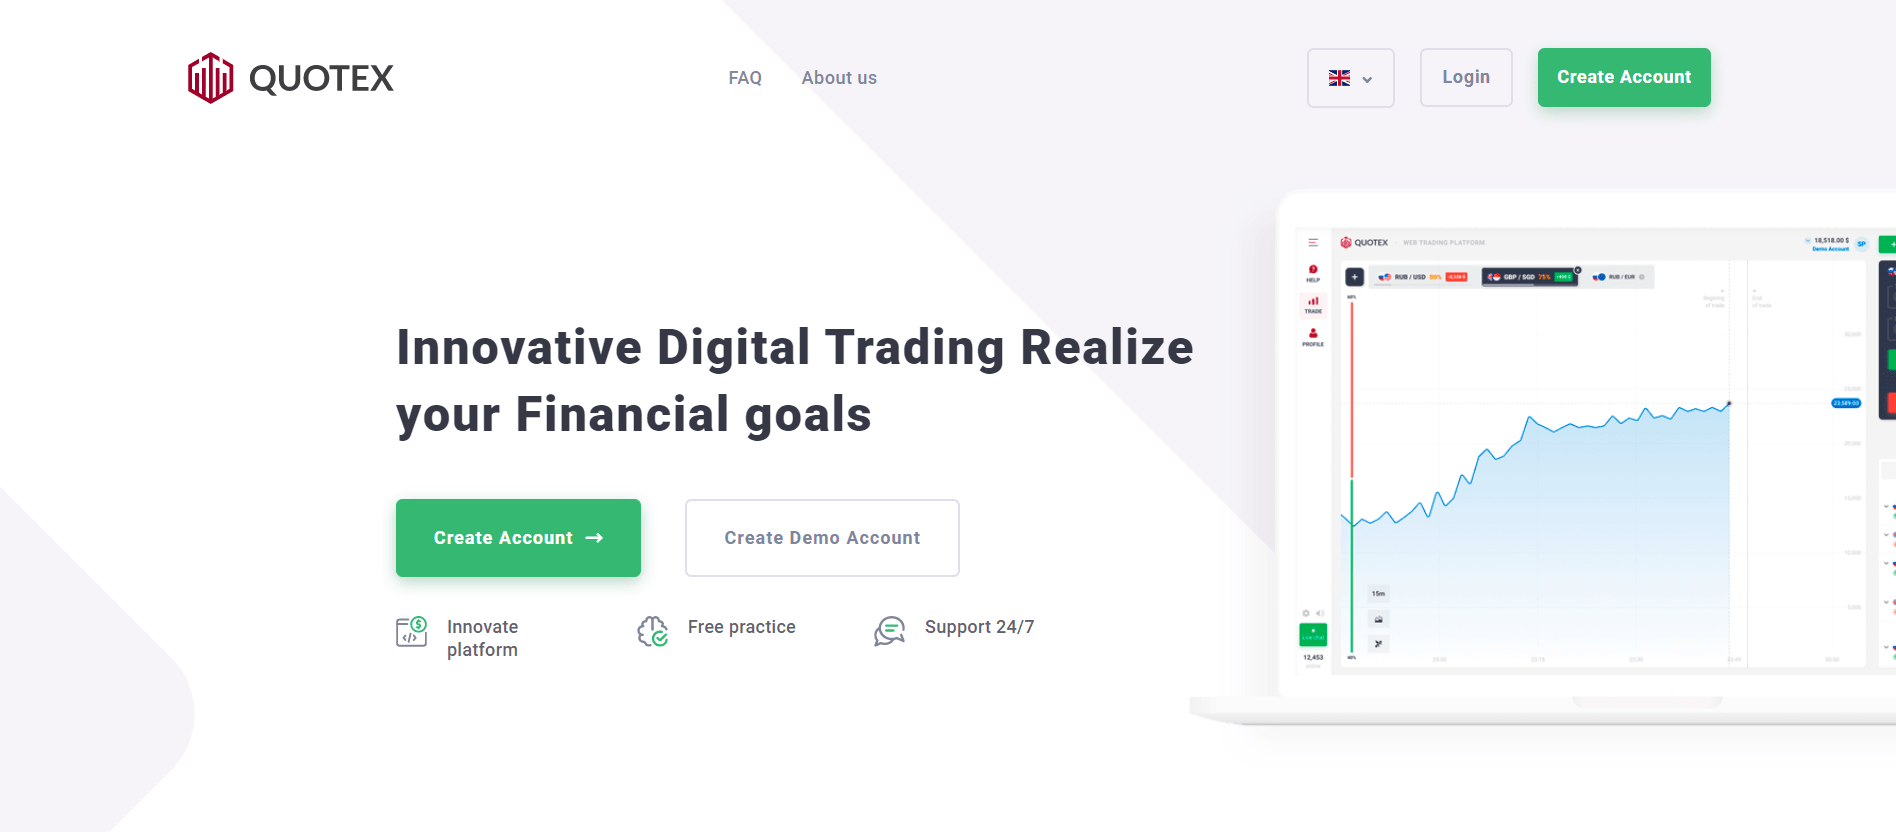 Quotex official website